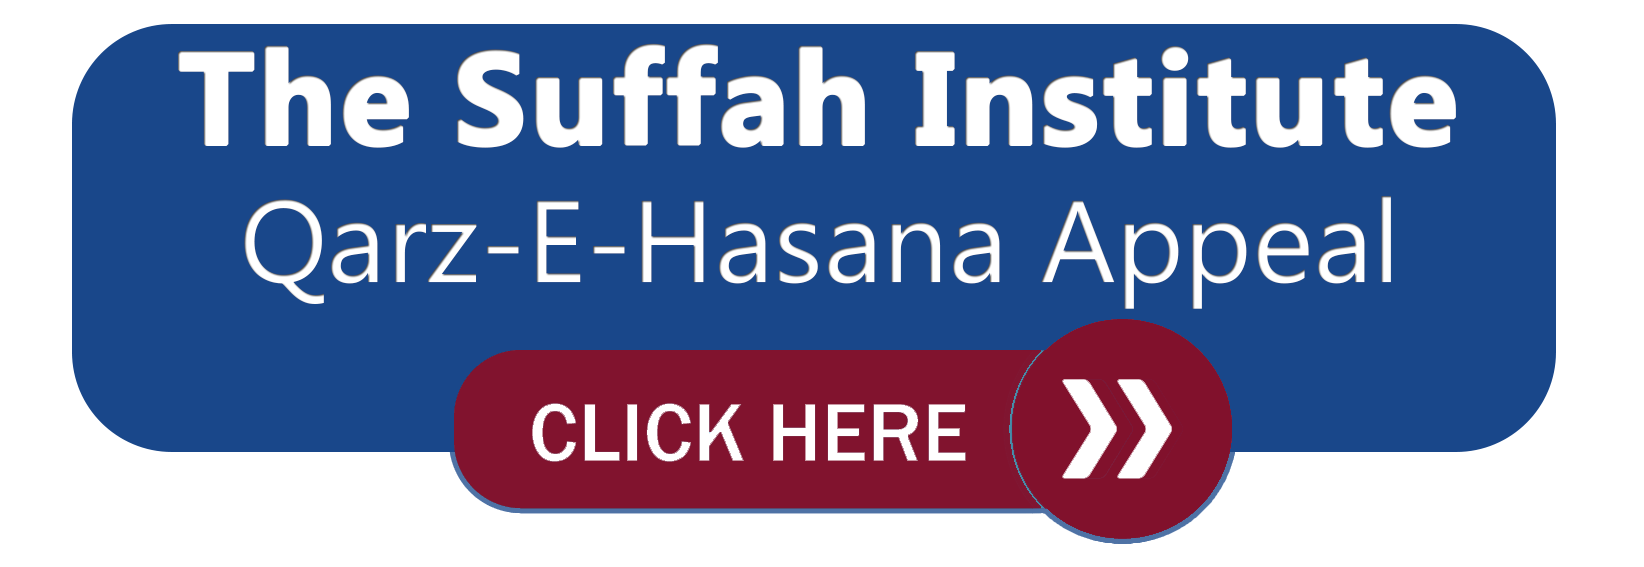 The Suffah Institute